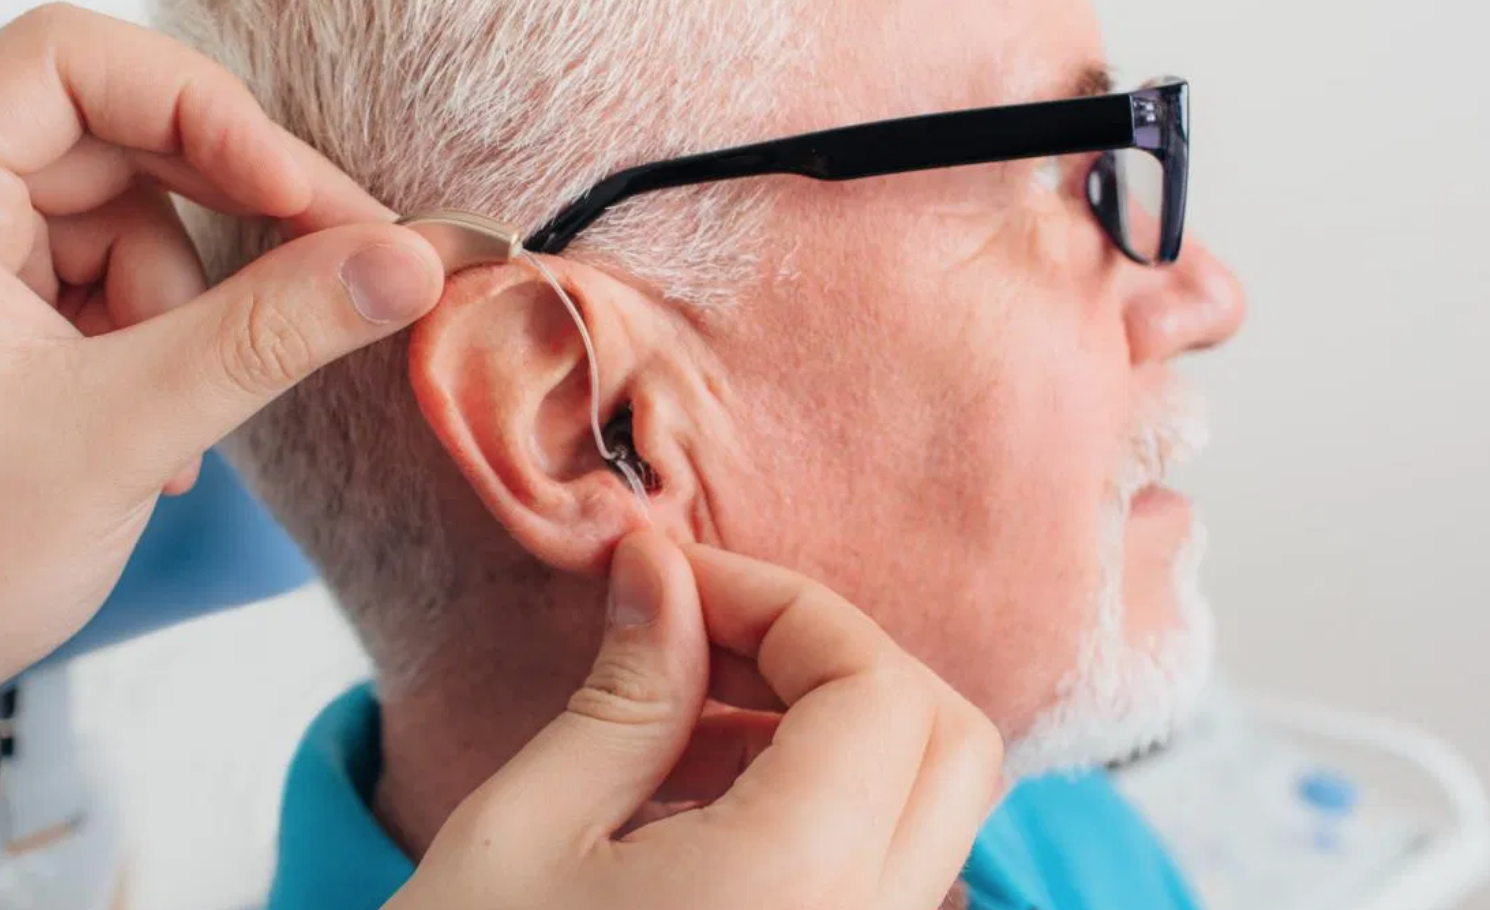 Man getting fitted with hearing aid